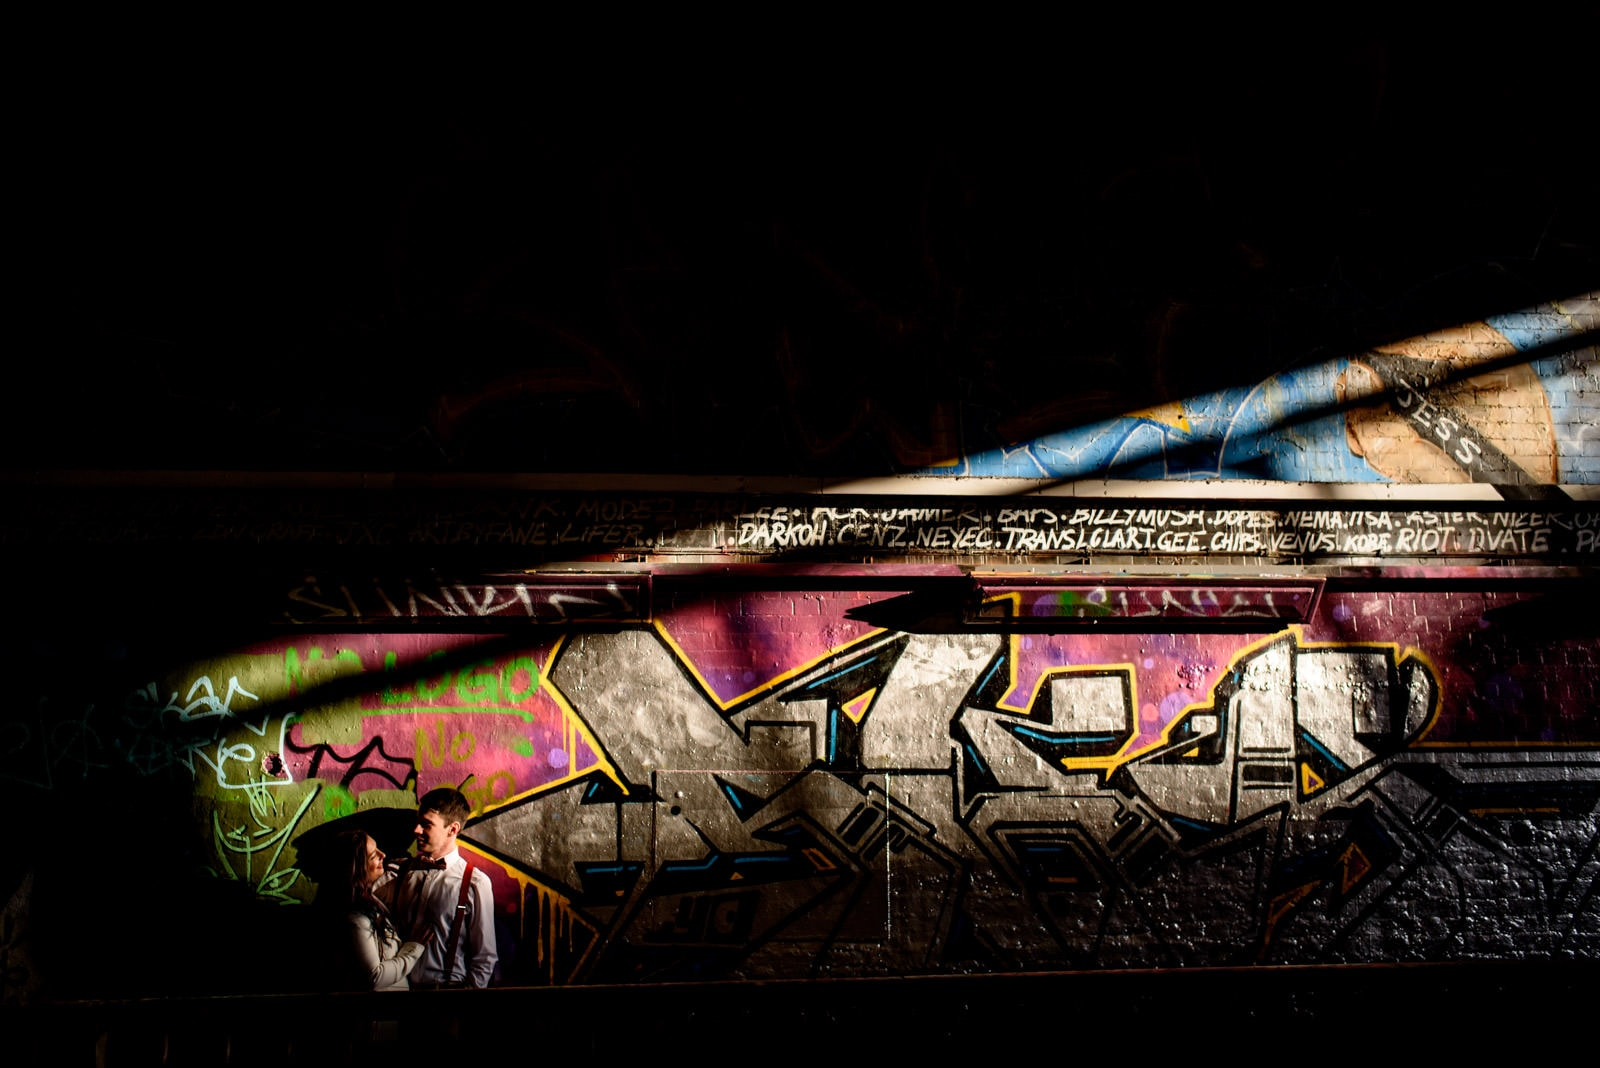 Graffiti engagement photos in Leake street, London